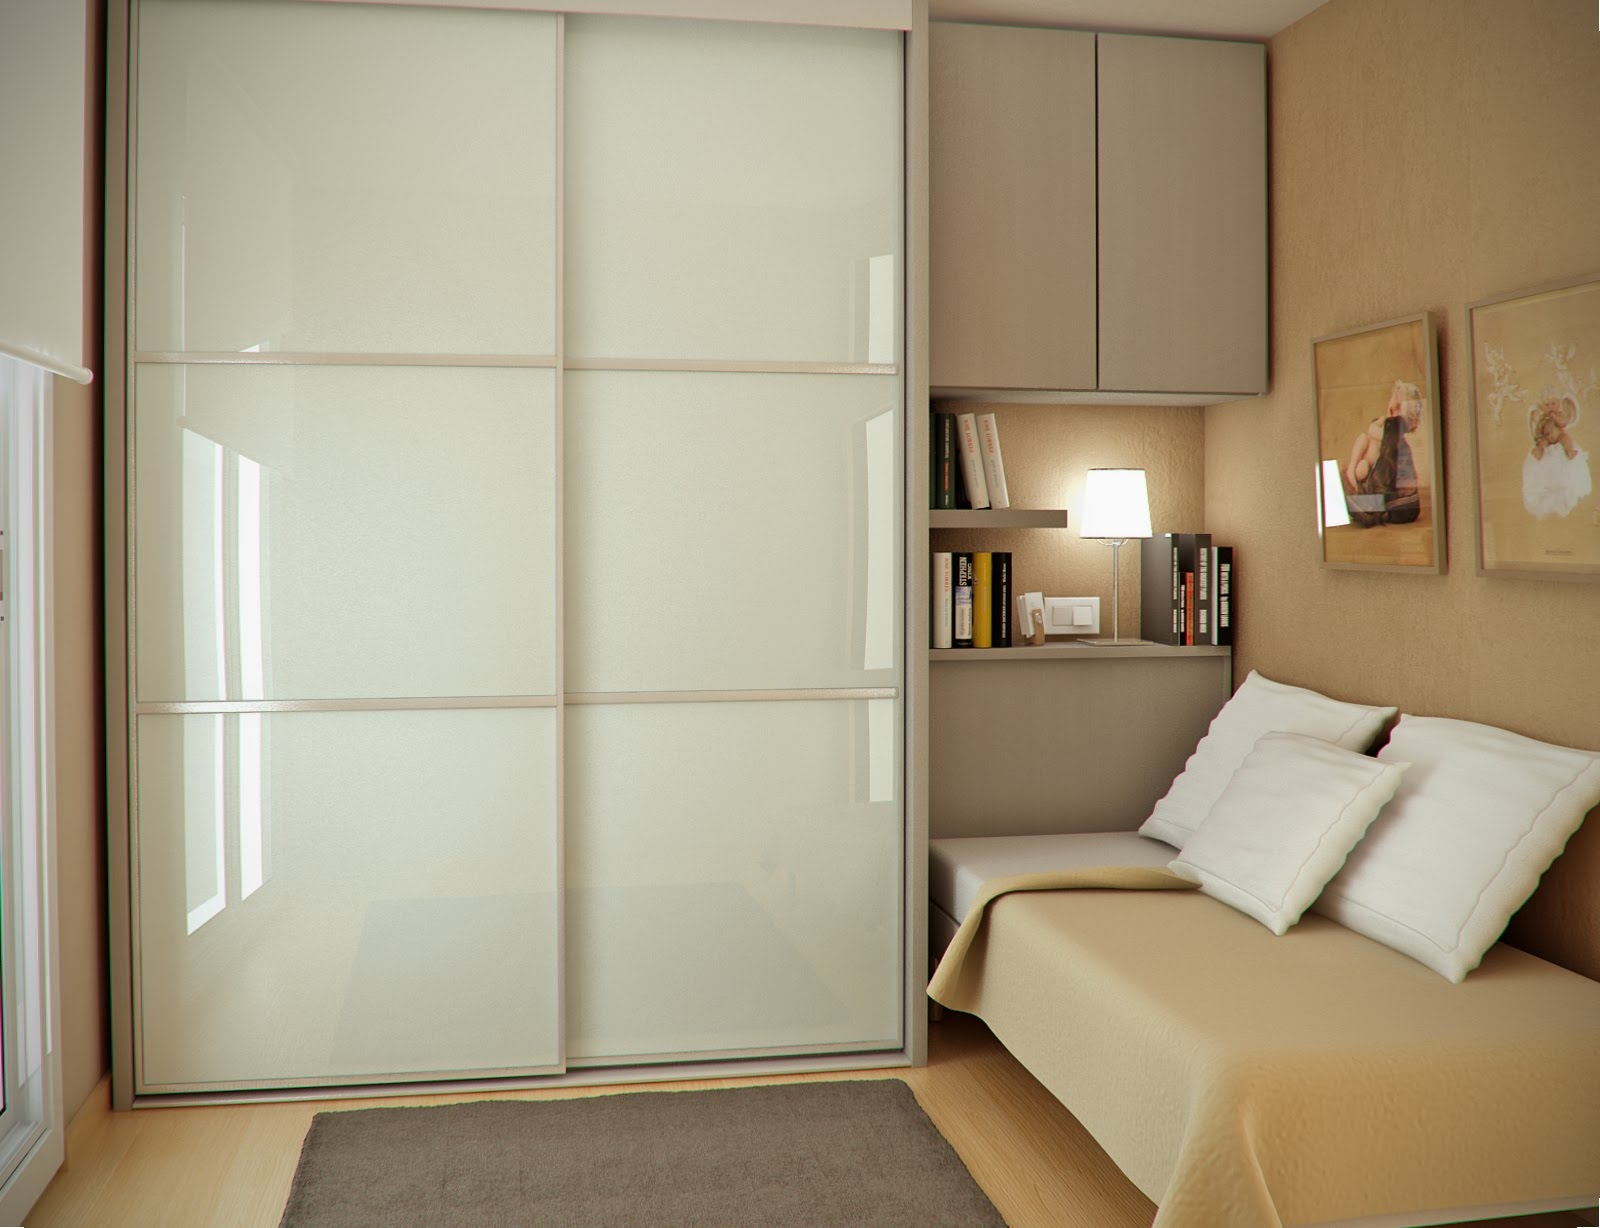 Best 10 Fitted Wardrobe Design Ideas On Pinterest Fitted Regarding Bedroom Wardrobe Storages (View 20 of 25)